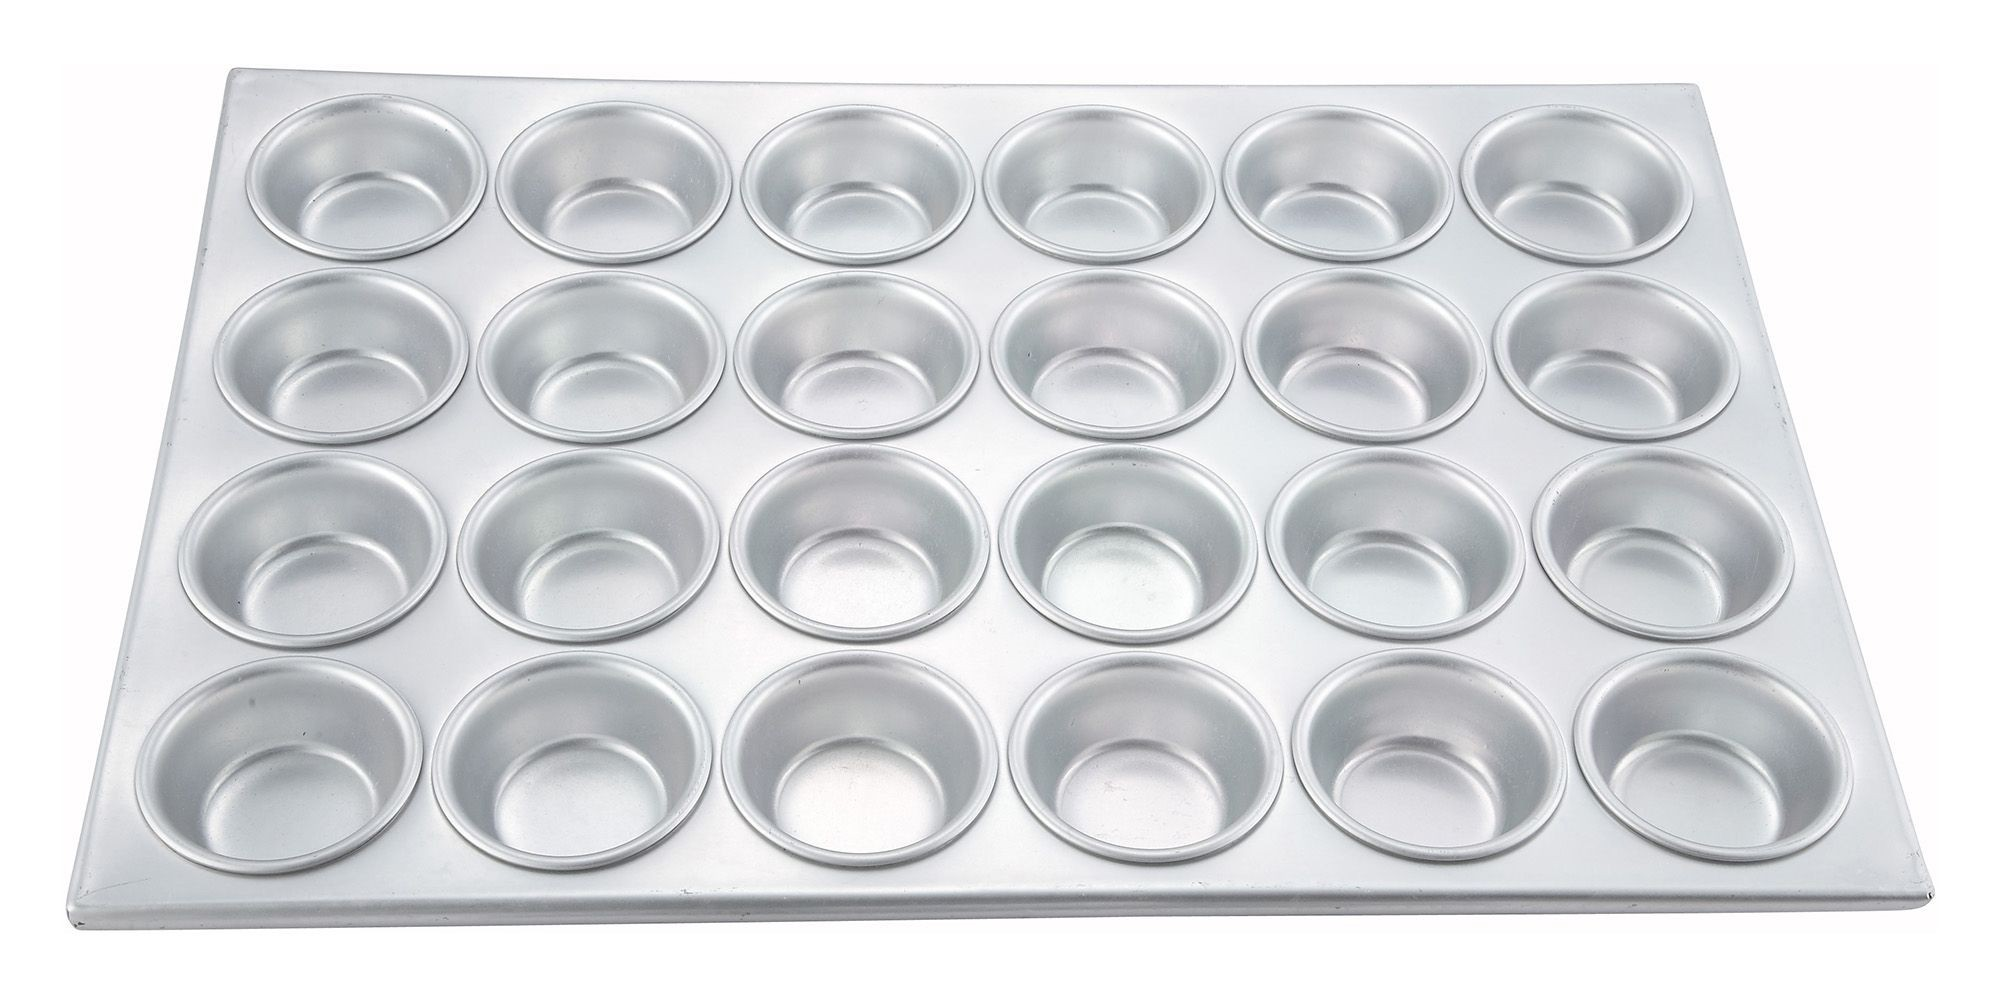 Aluminum 24-Compartment Muffin Pan, 20-1/2